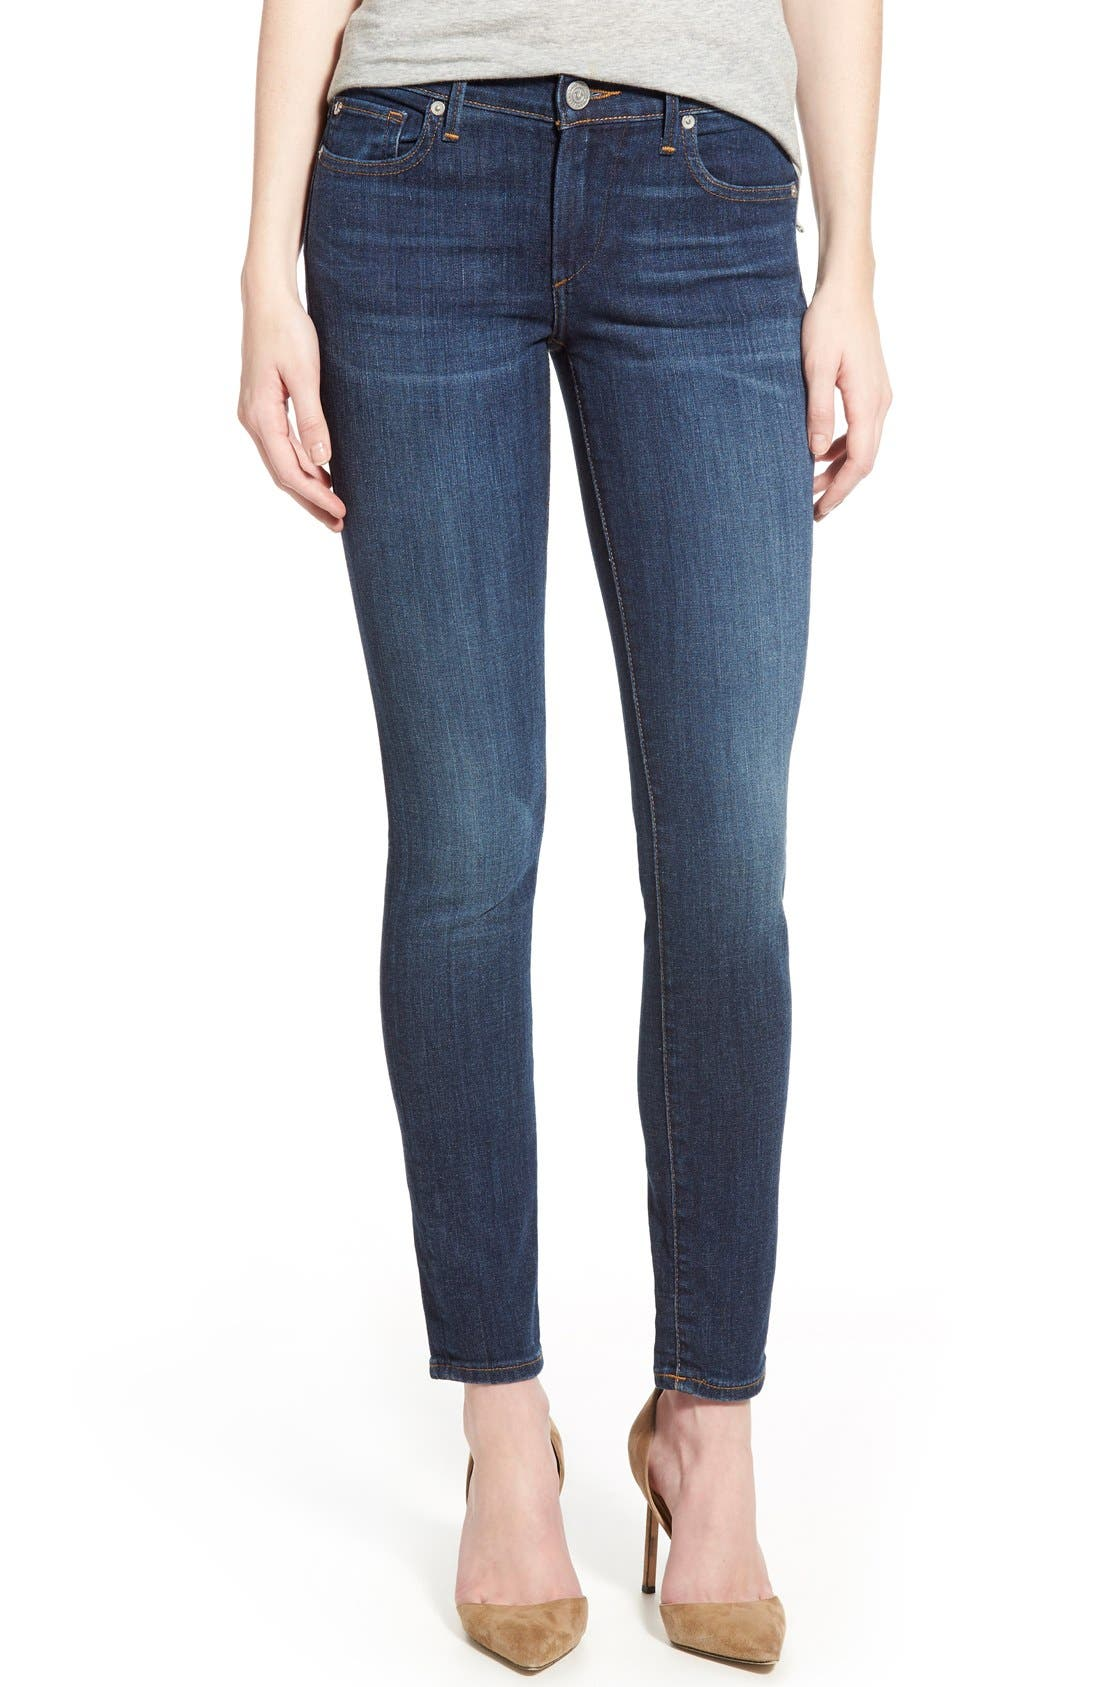 'Halle' Skinny Jeans,                             Main thumbnail 1, color,                             402